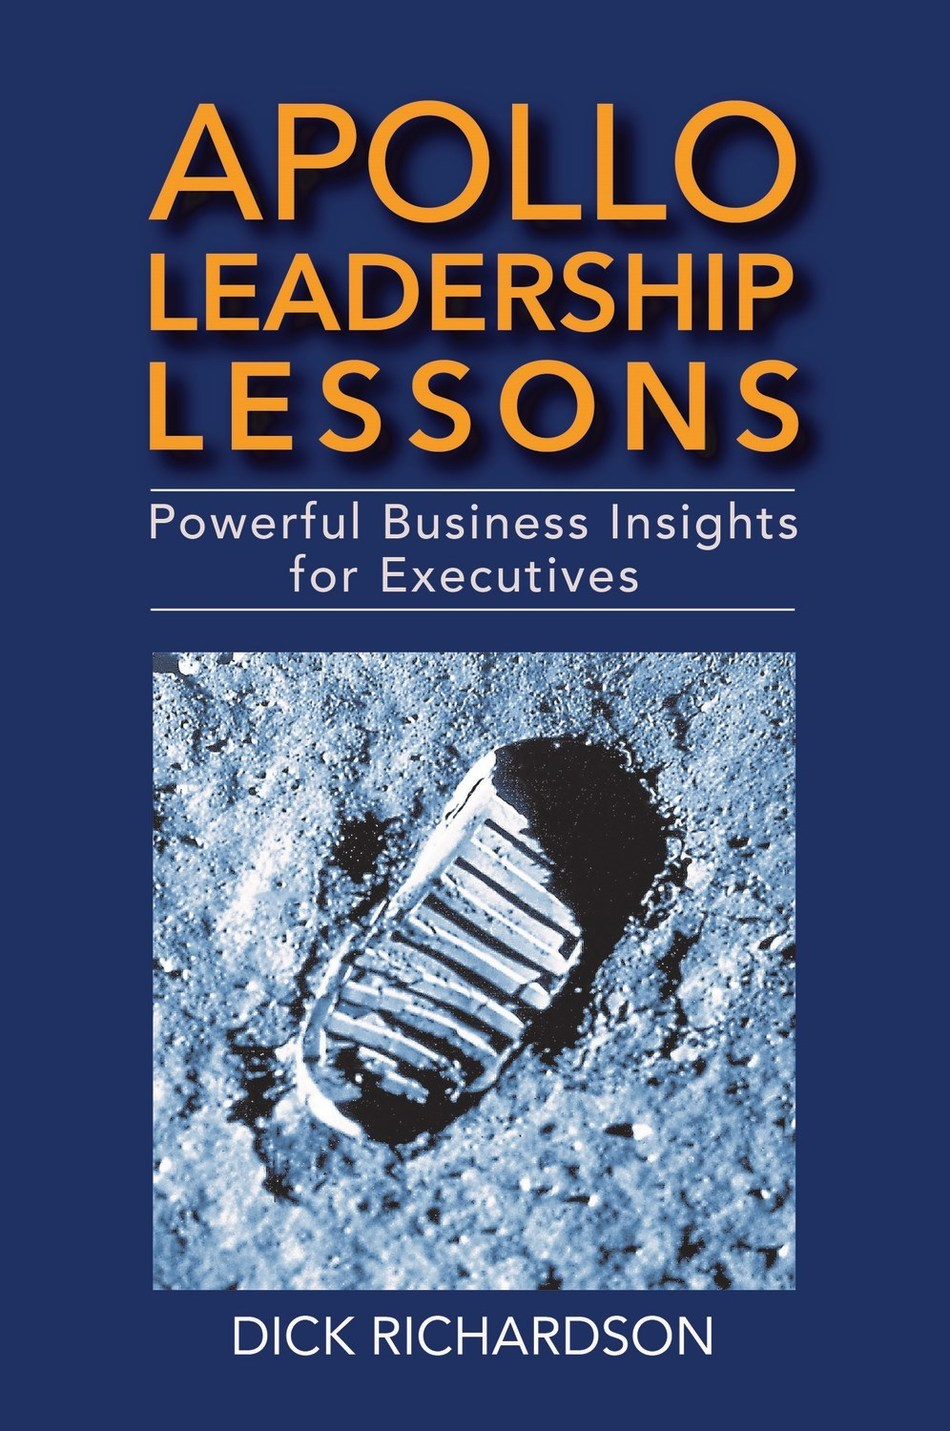 Cover of Apollo Leadership Lessons: Powerful Business Insight for Executive by Dick Richardson (Authority Publishing)